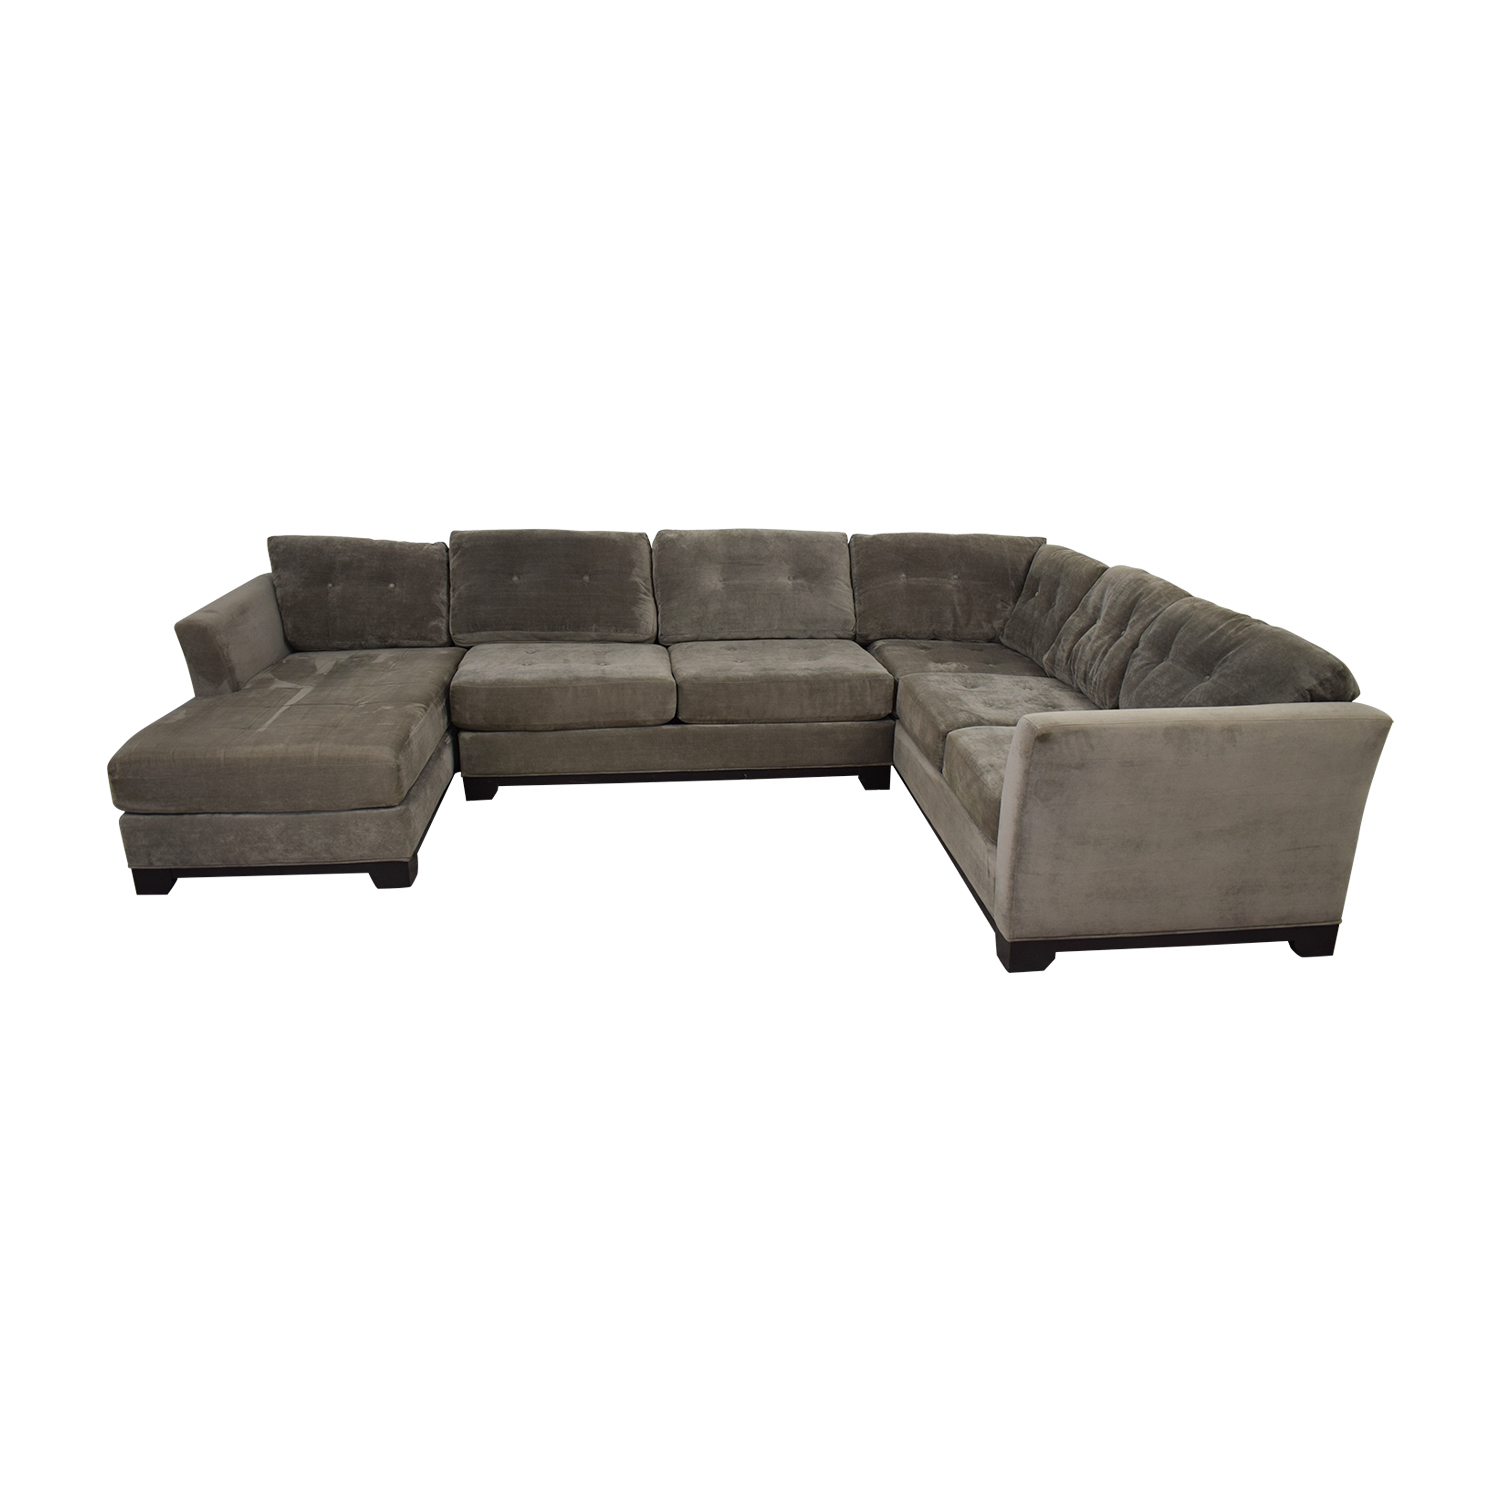 Jonathan Lewis Jonathan Lewis Elliot Grey Tufted Microfiber Chaise U-Shaped Sectional nyc